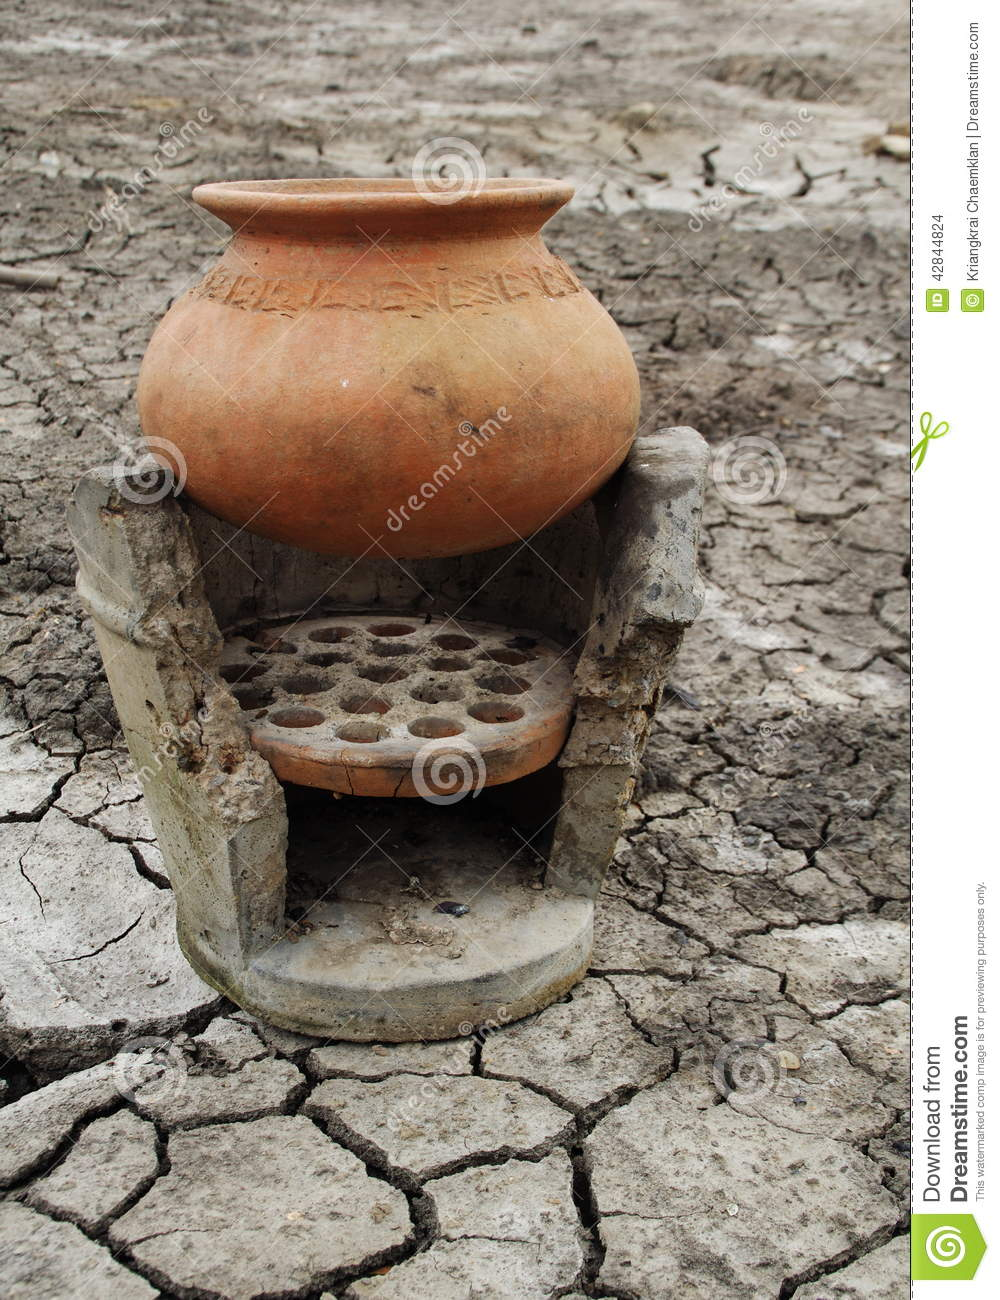 Clay Pot and Ancient Stove stock photo Image of clay  42844824